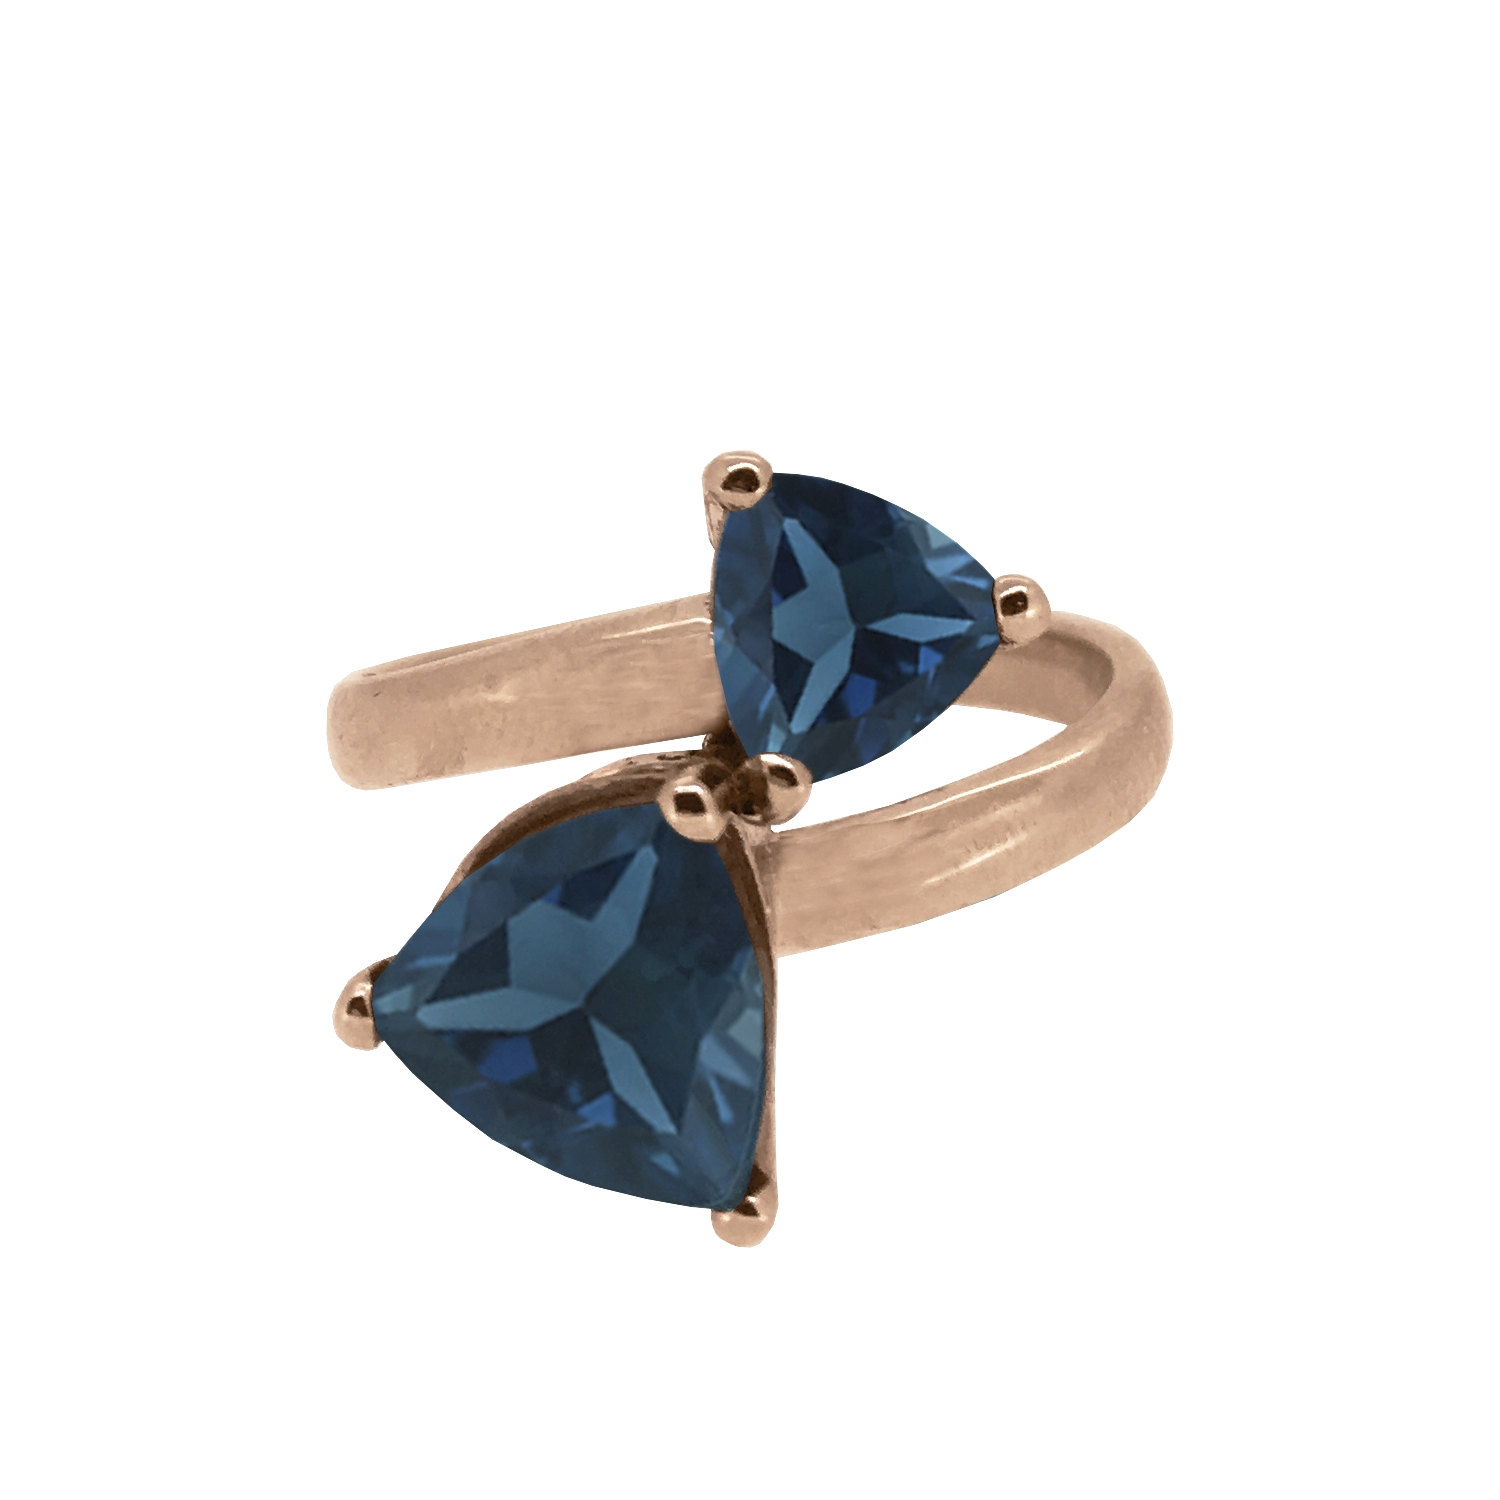 Twilight Collection Trilliant Cut Teal Topaz Ring 9ct Rose Gold copy.jpg